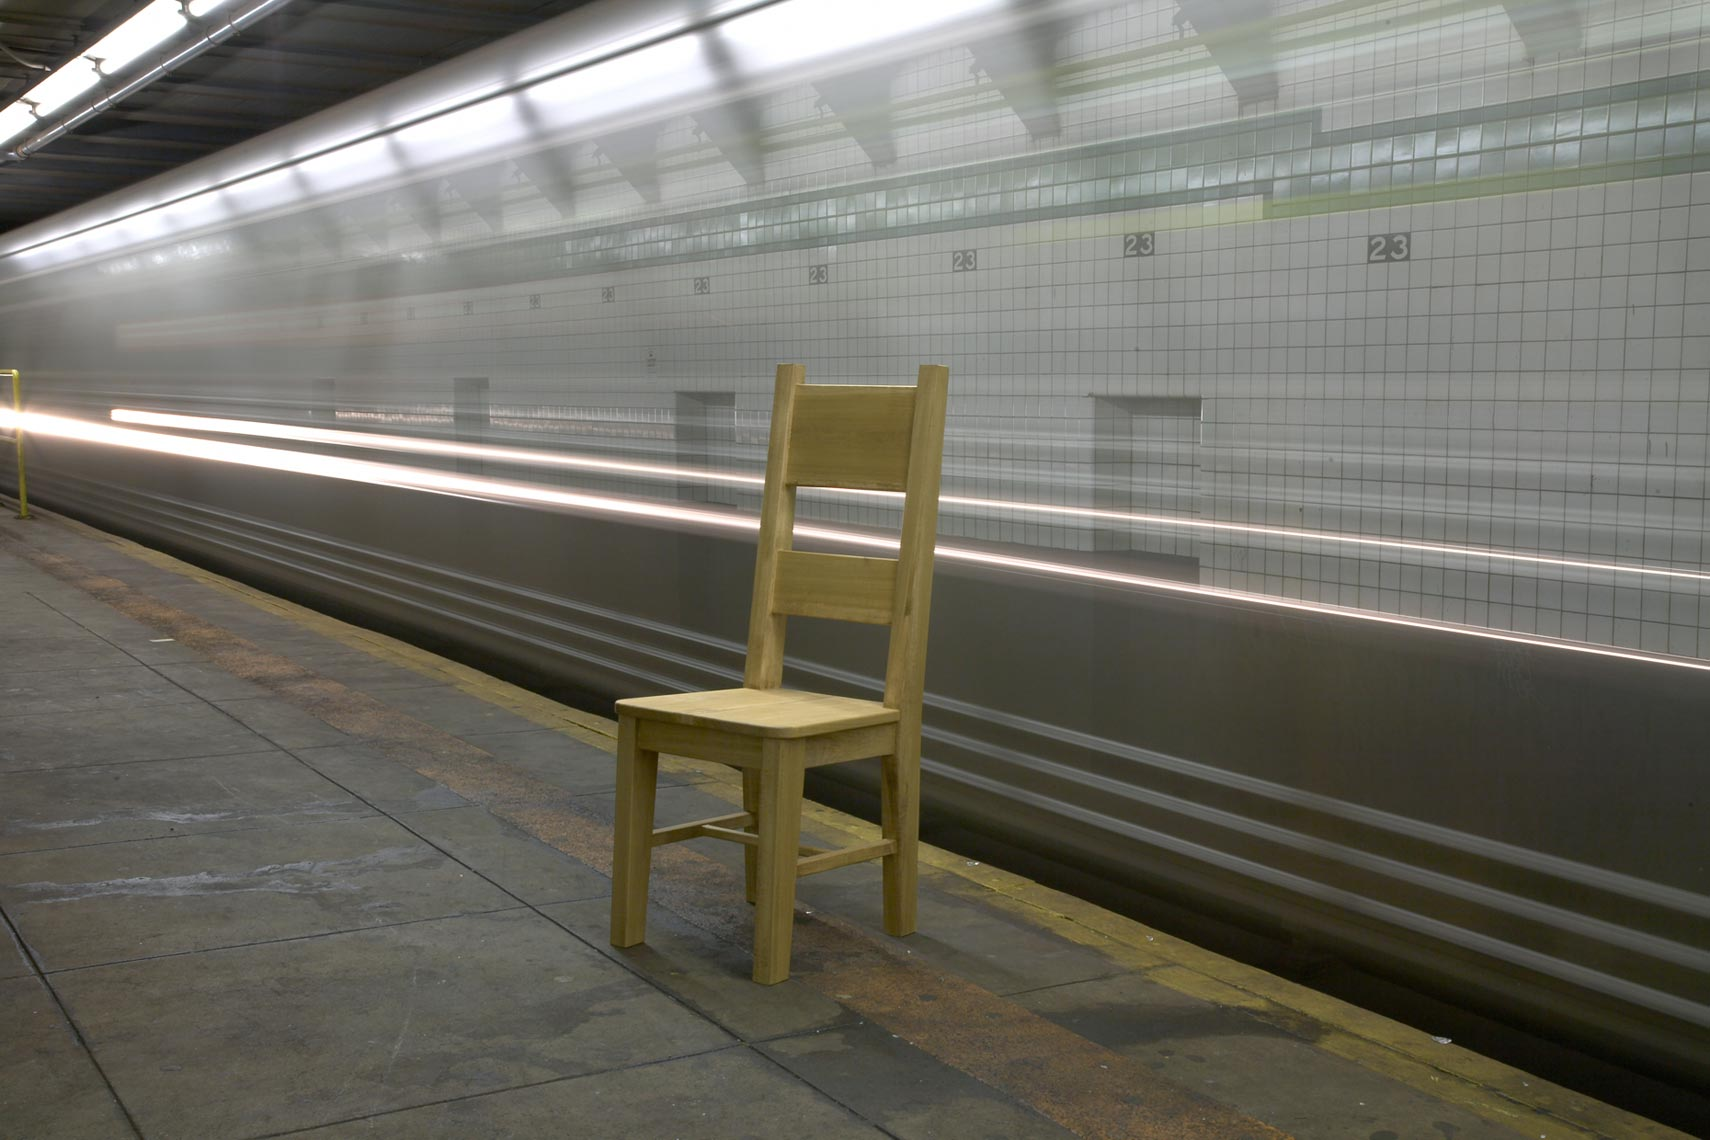 Chair_in_subway.jpg